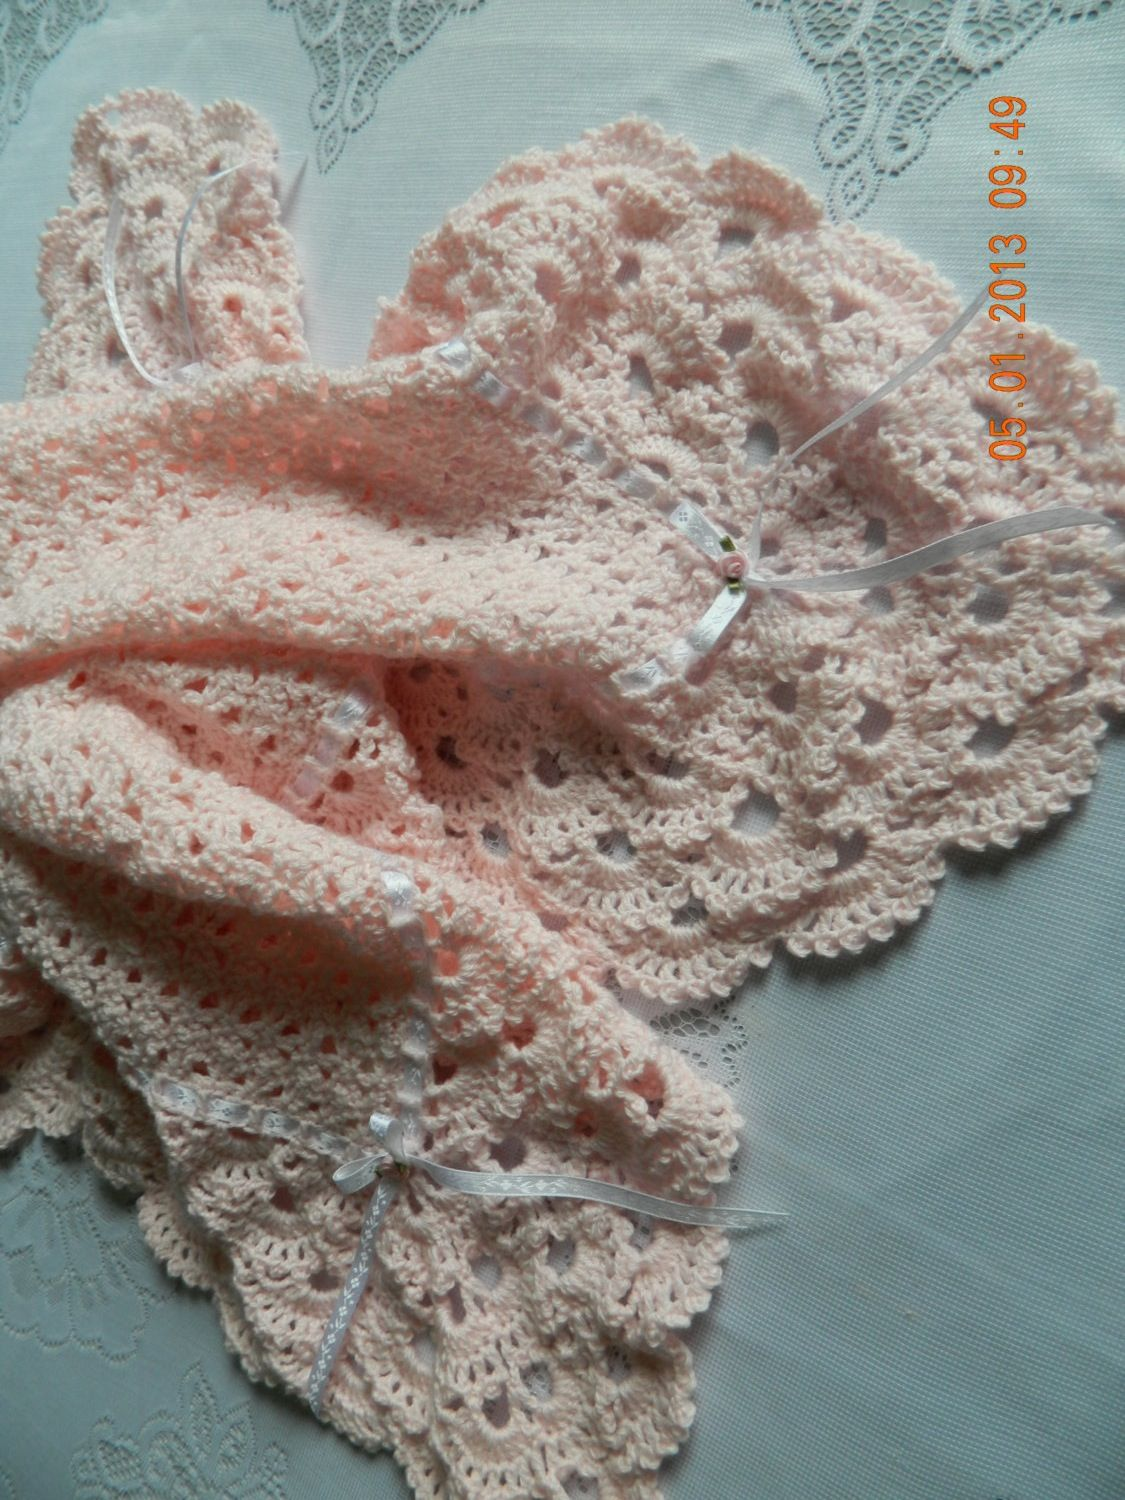 Peach Crochet Baby Blanket | Crafts | Pinterest | Decken, Häkeln für ...